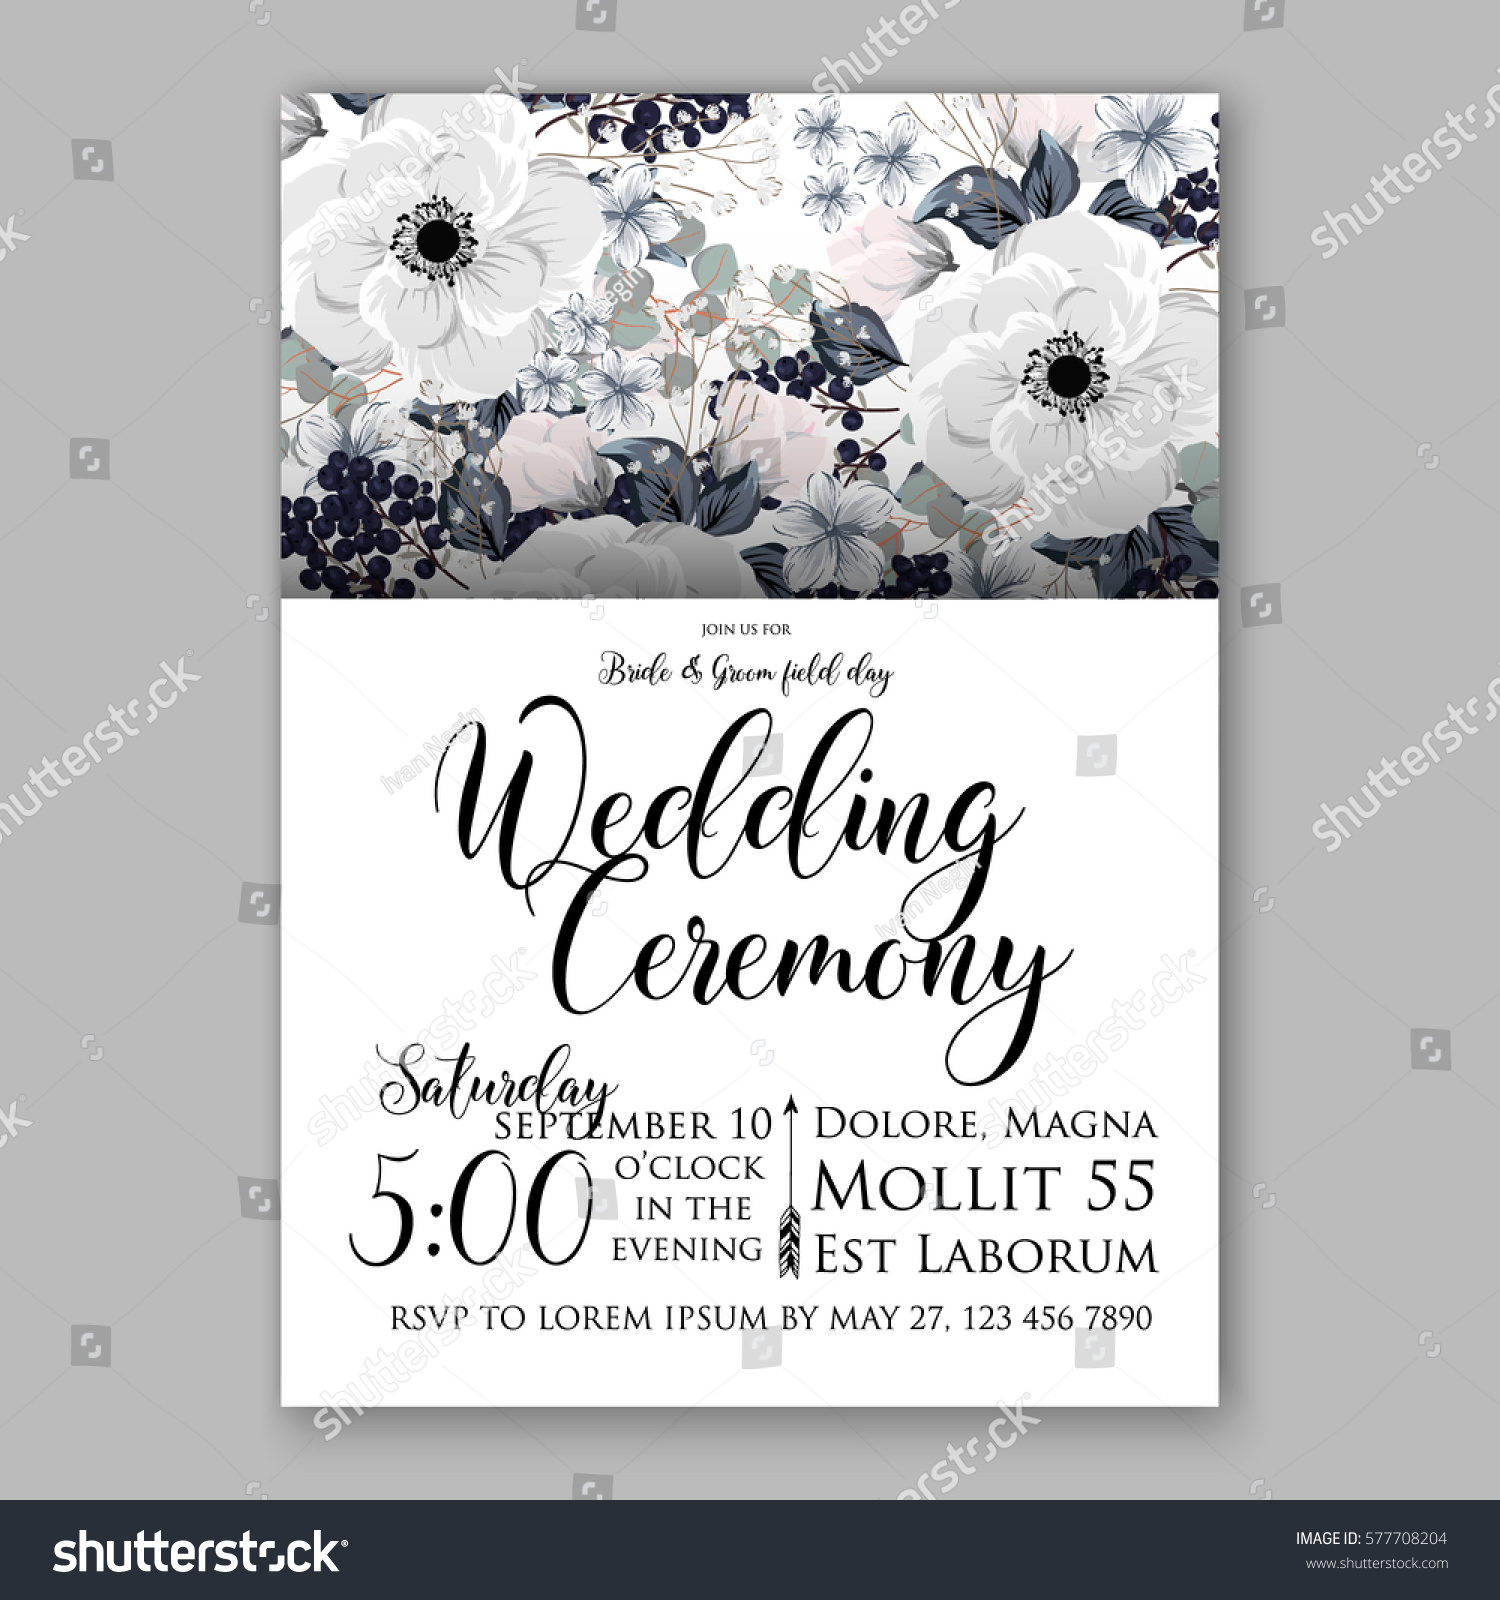 Anemone Wedding Invitation Card Template Floral Stock Vector ...